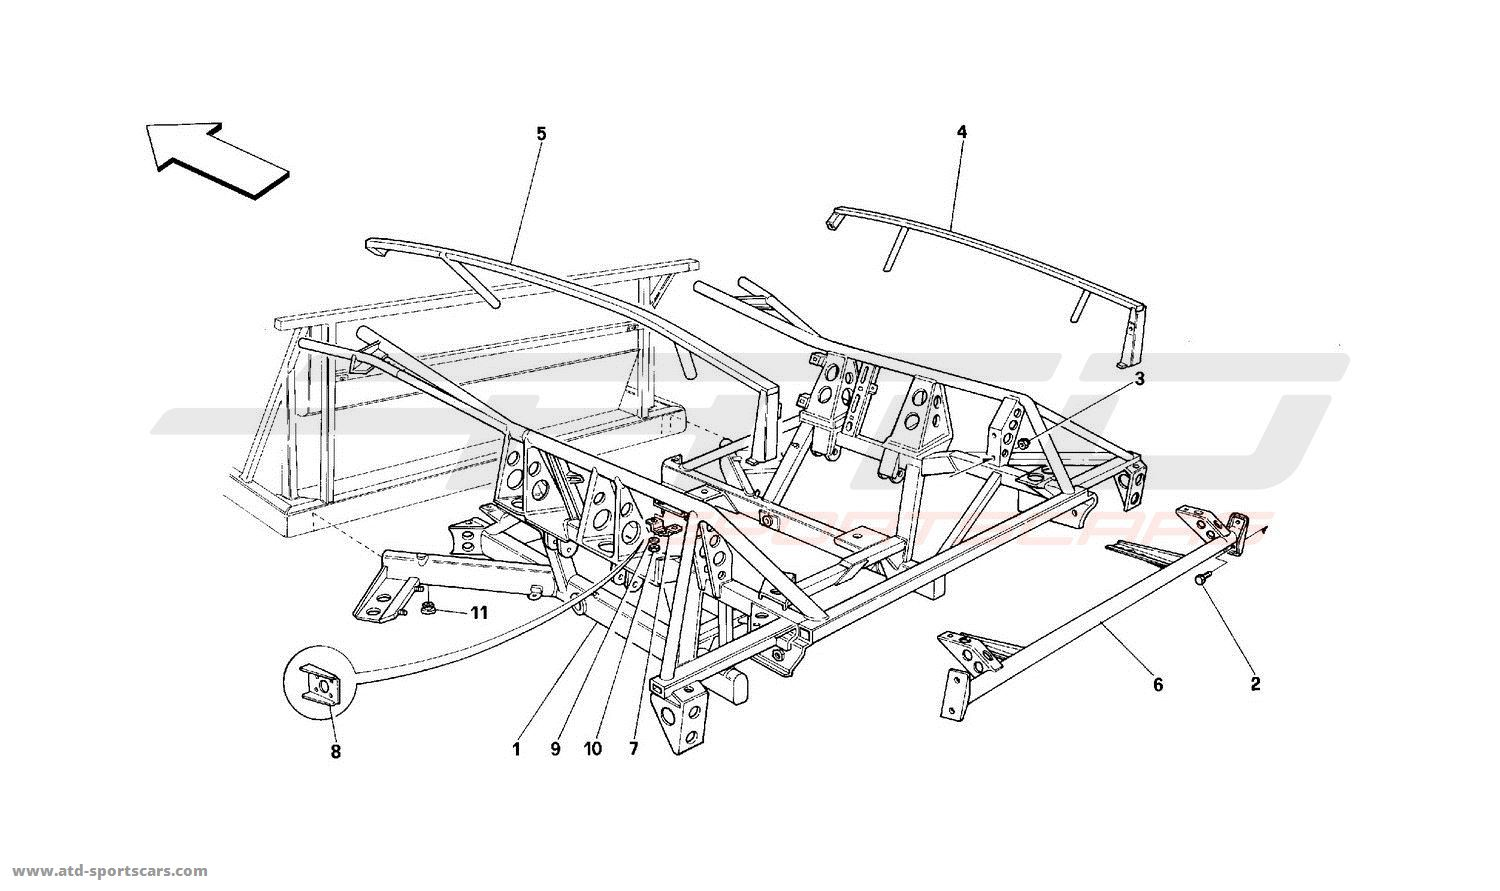 Ferrari 512 Tr Structural Frames Parts At Atd Sportscars